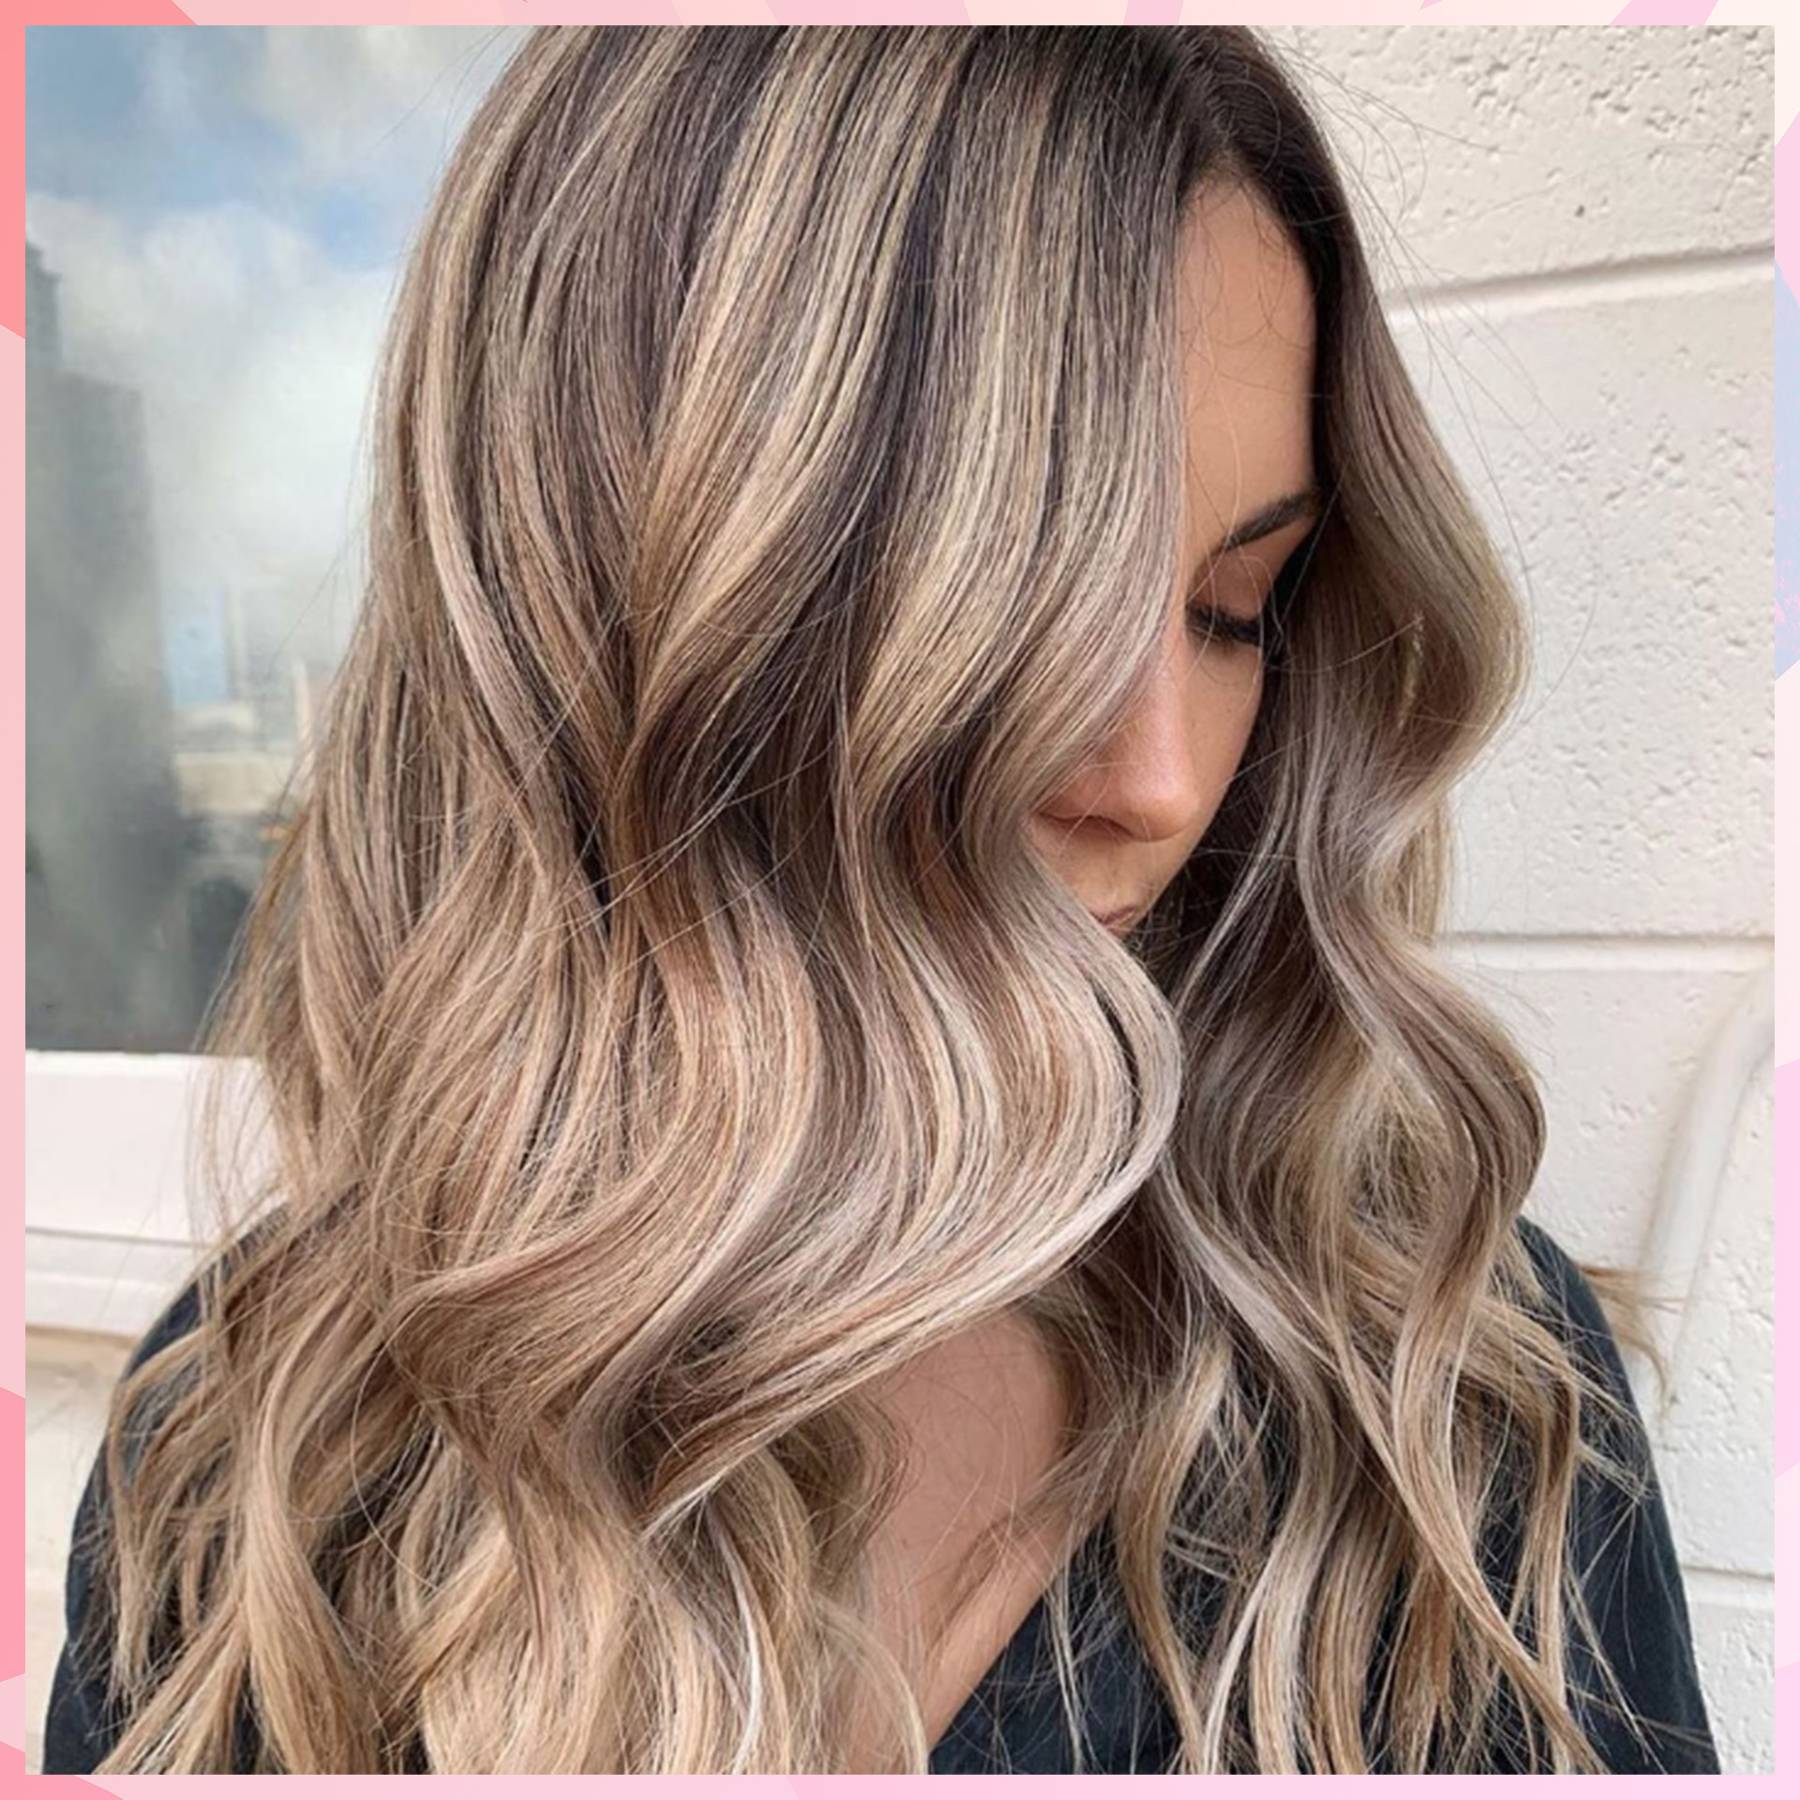 Buttercream Blonde Is The Prettiest New Hair Colour For 2020 ...